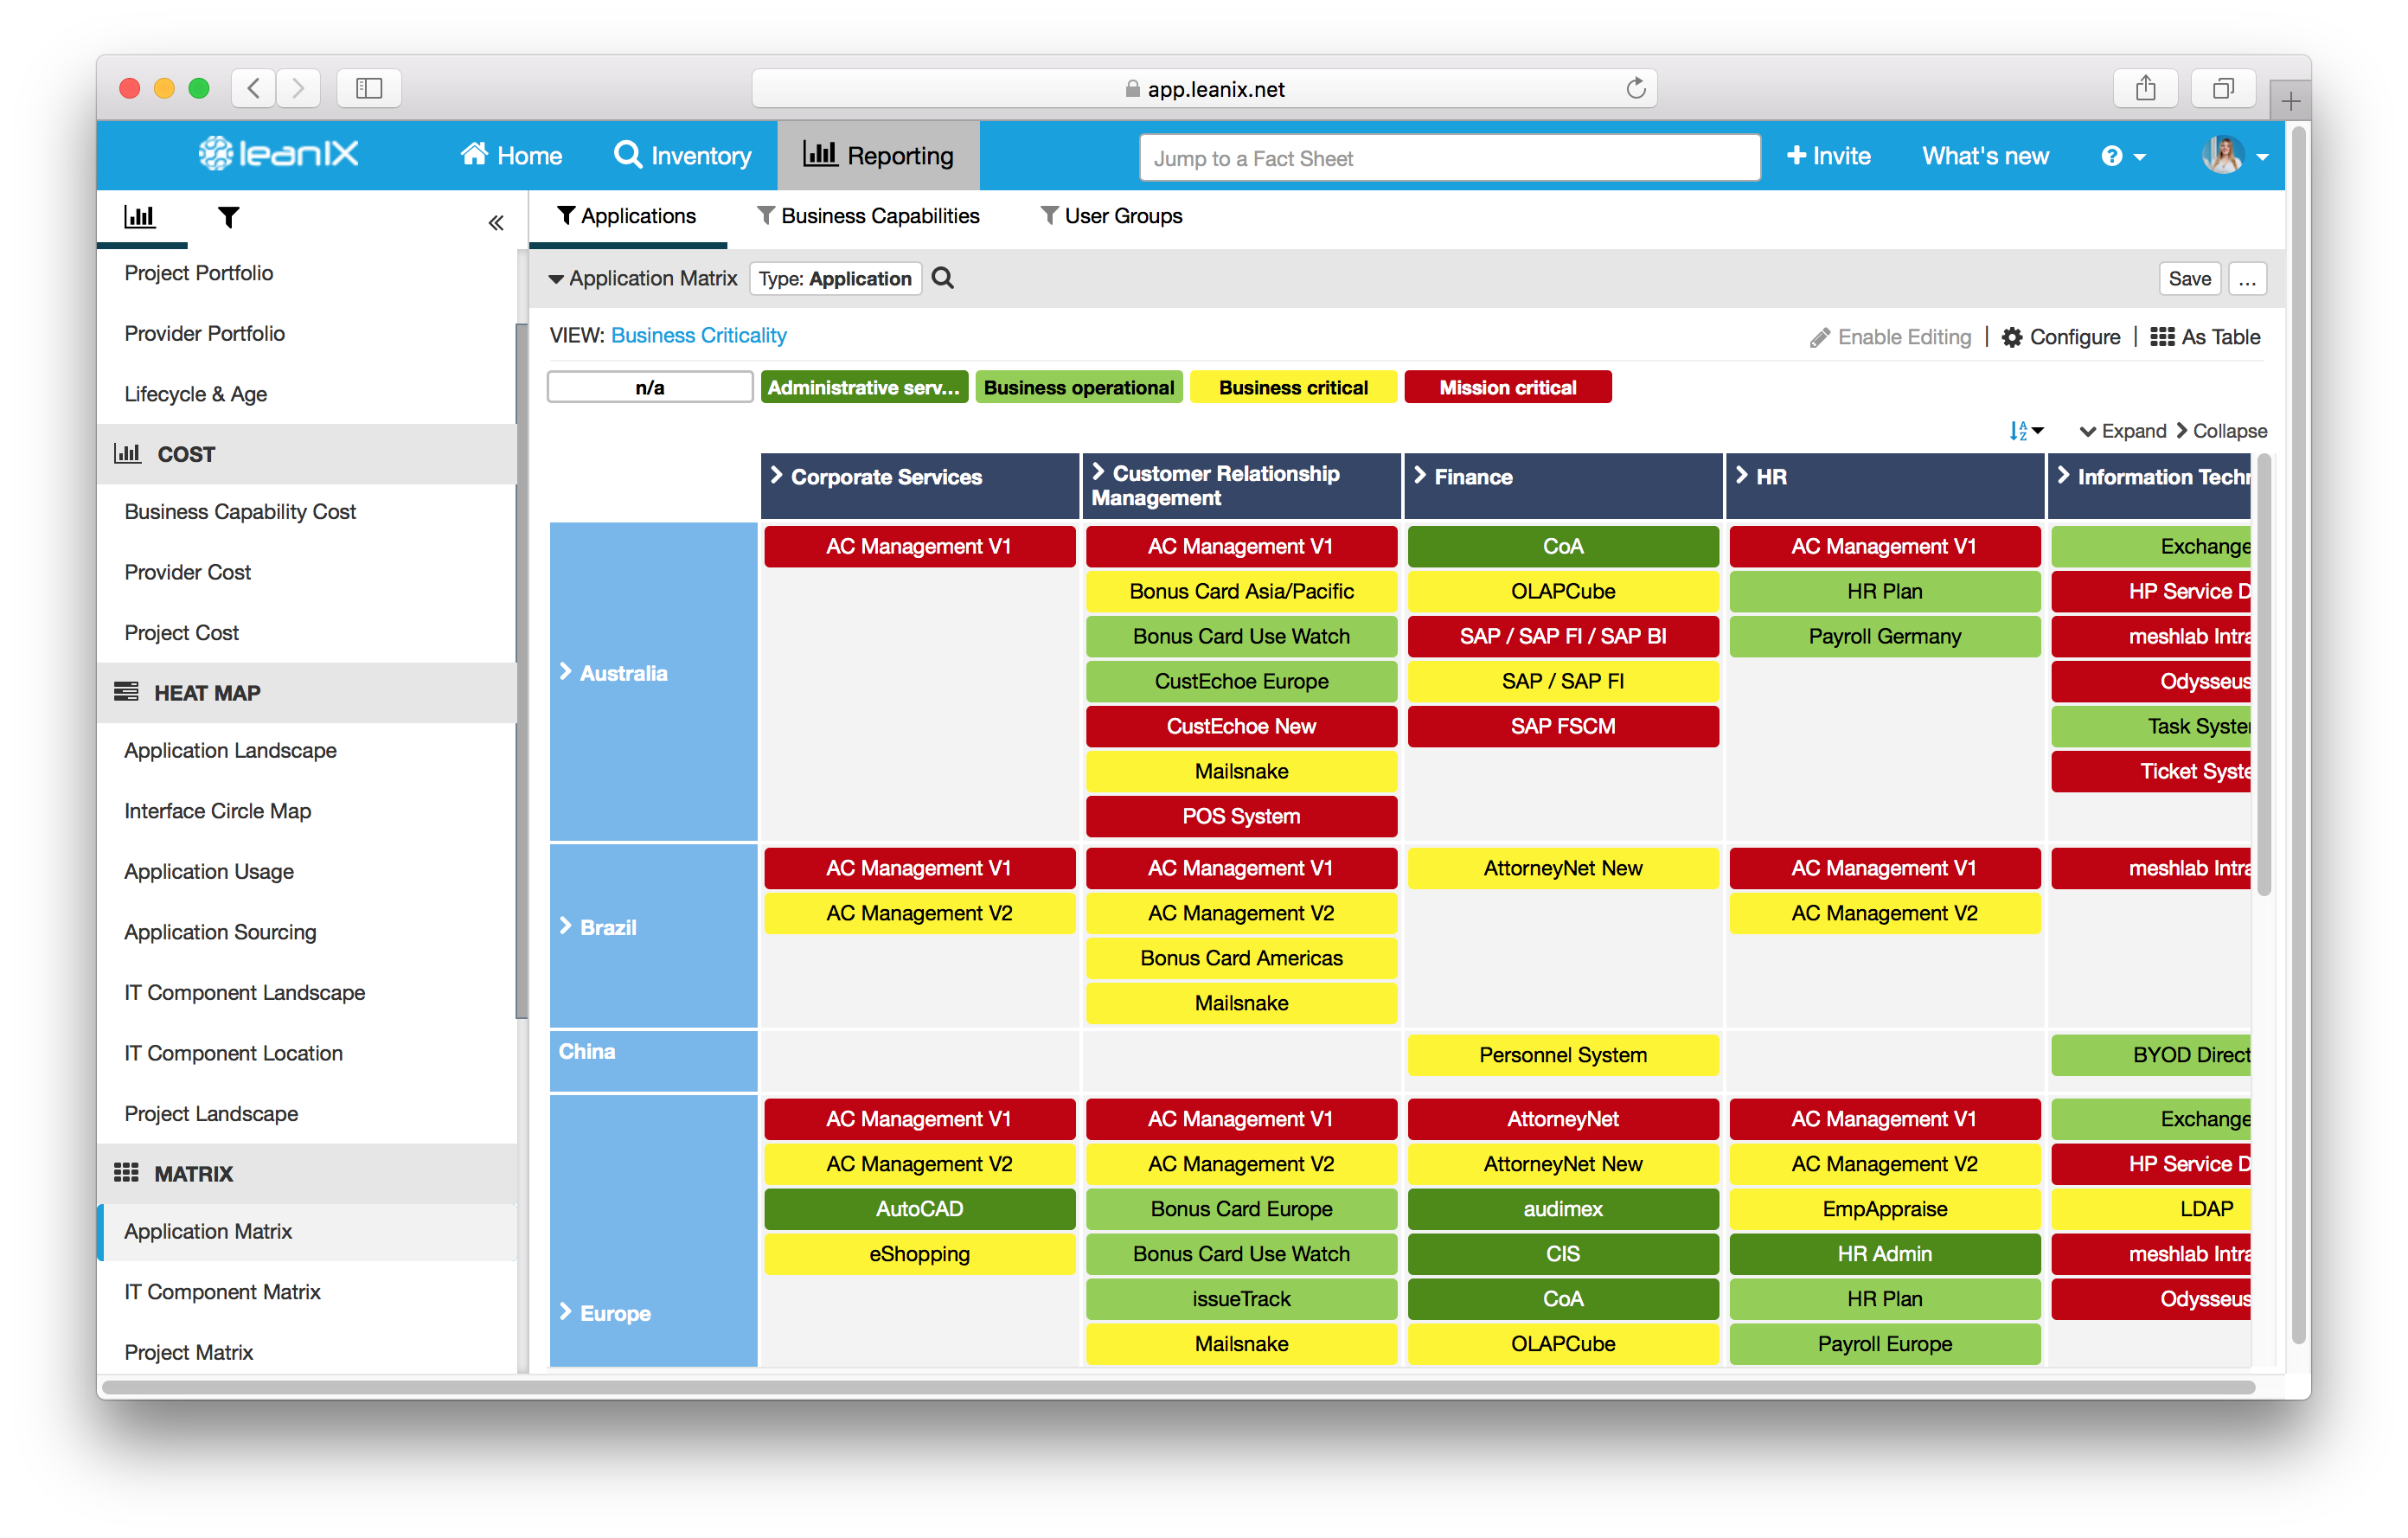 Application portfolio showing the criticality of business capabilities across user groups